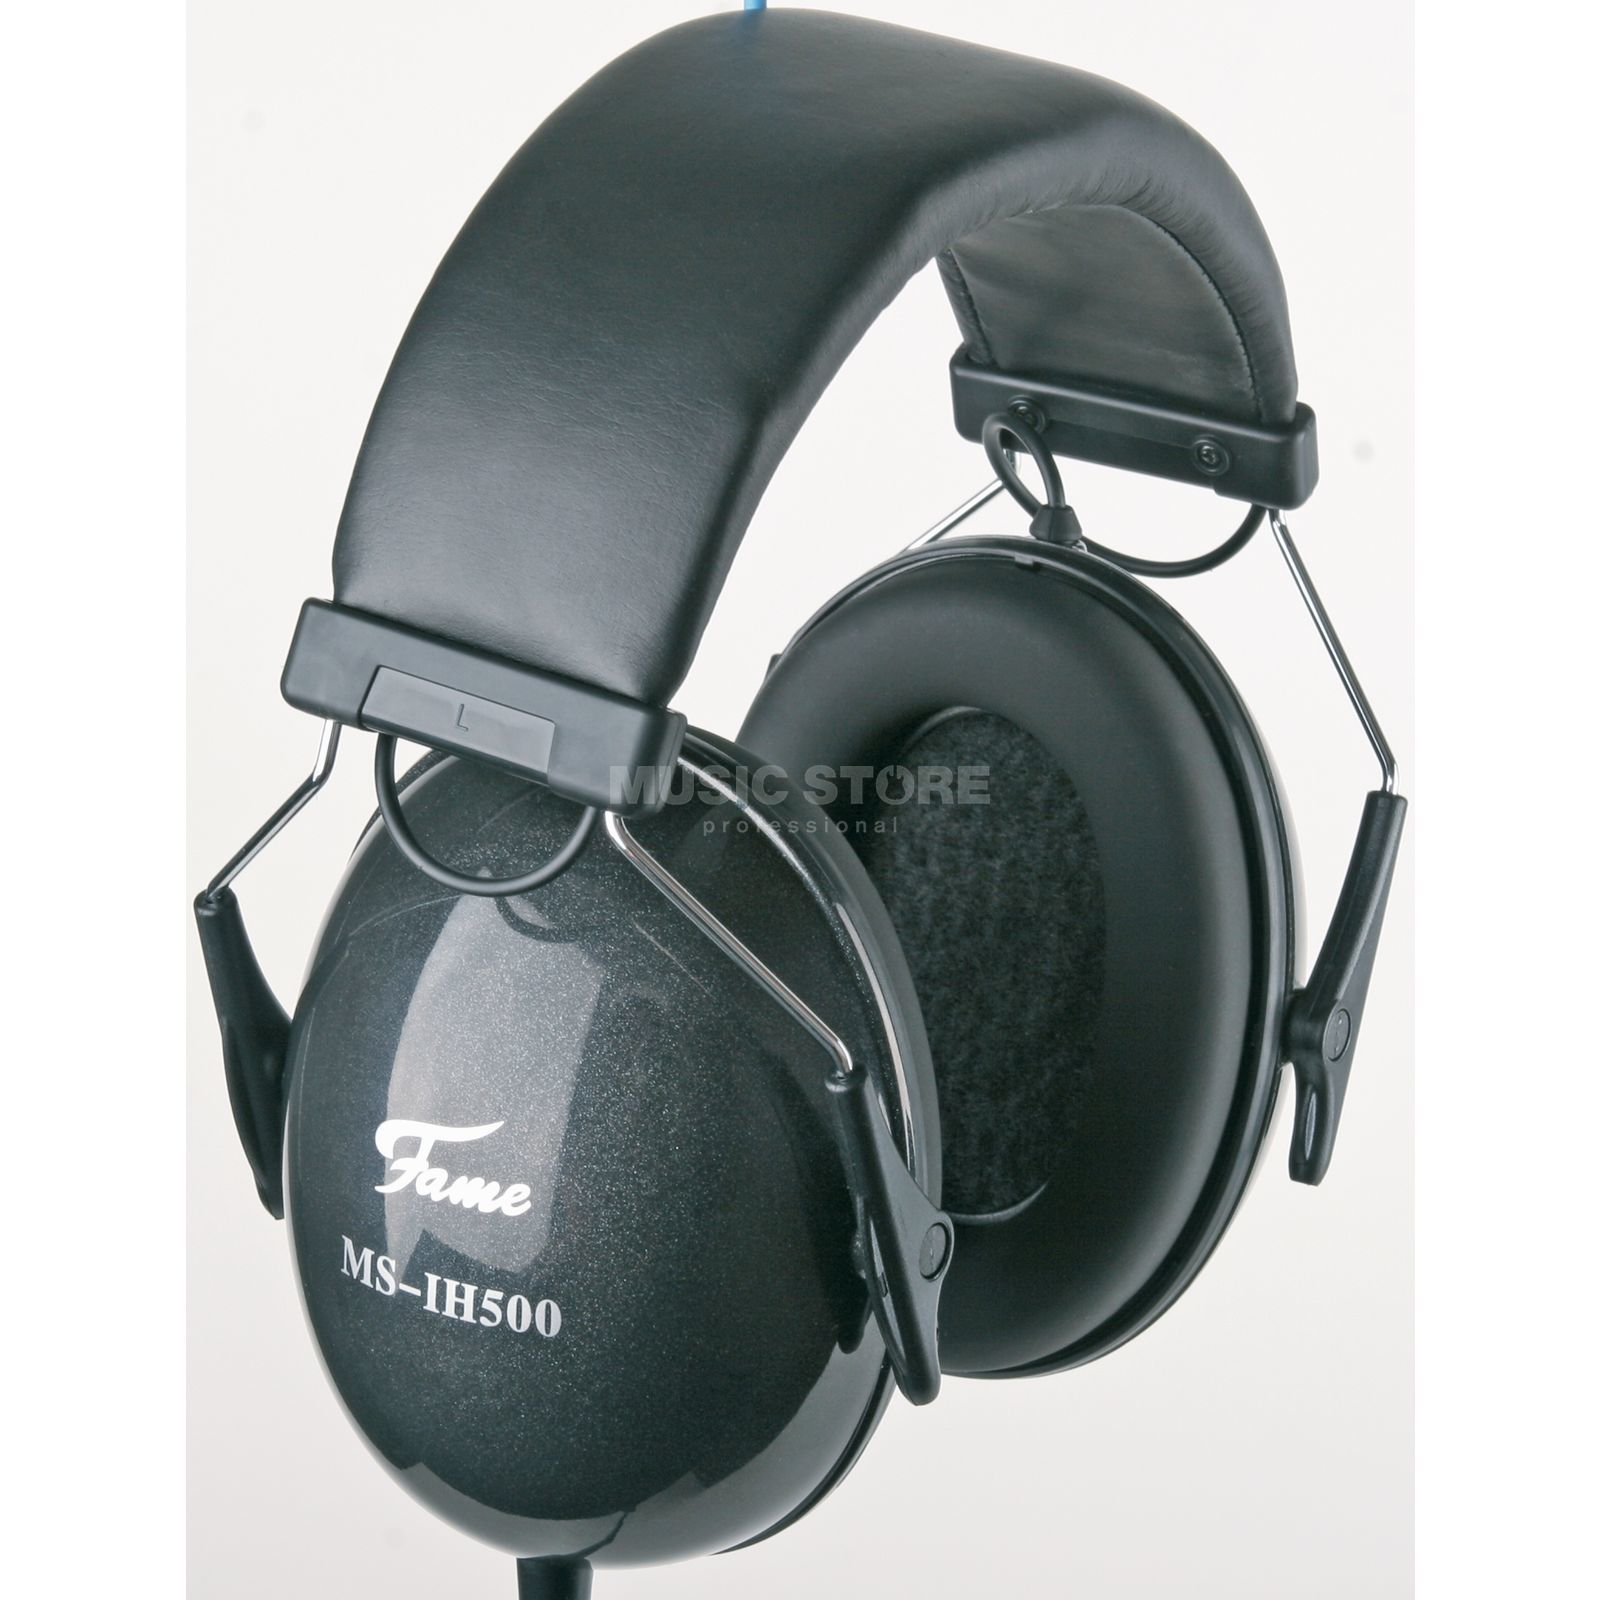 Fame MS-IH 500 Auricular  Imagen del producto